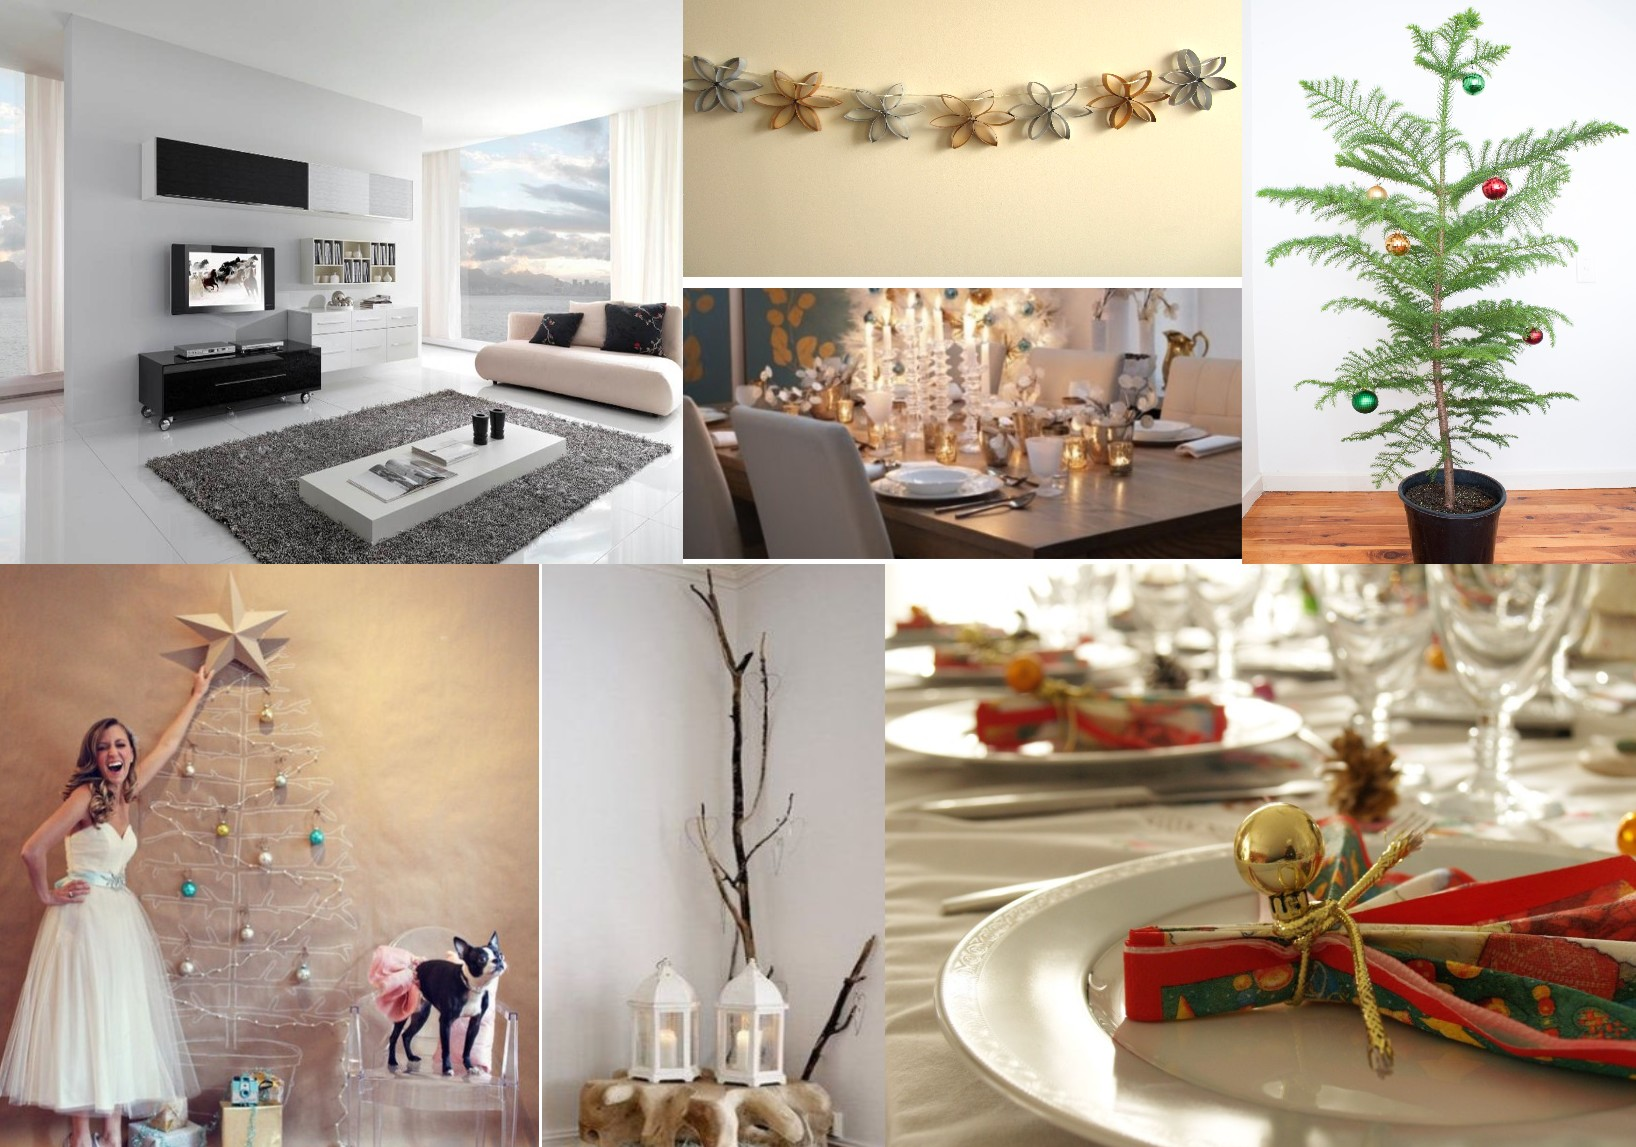 Centros de navidad tendencias 2015 blog decoraci n e for Decoracion navidena minimalista